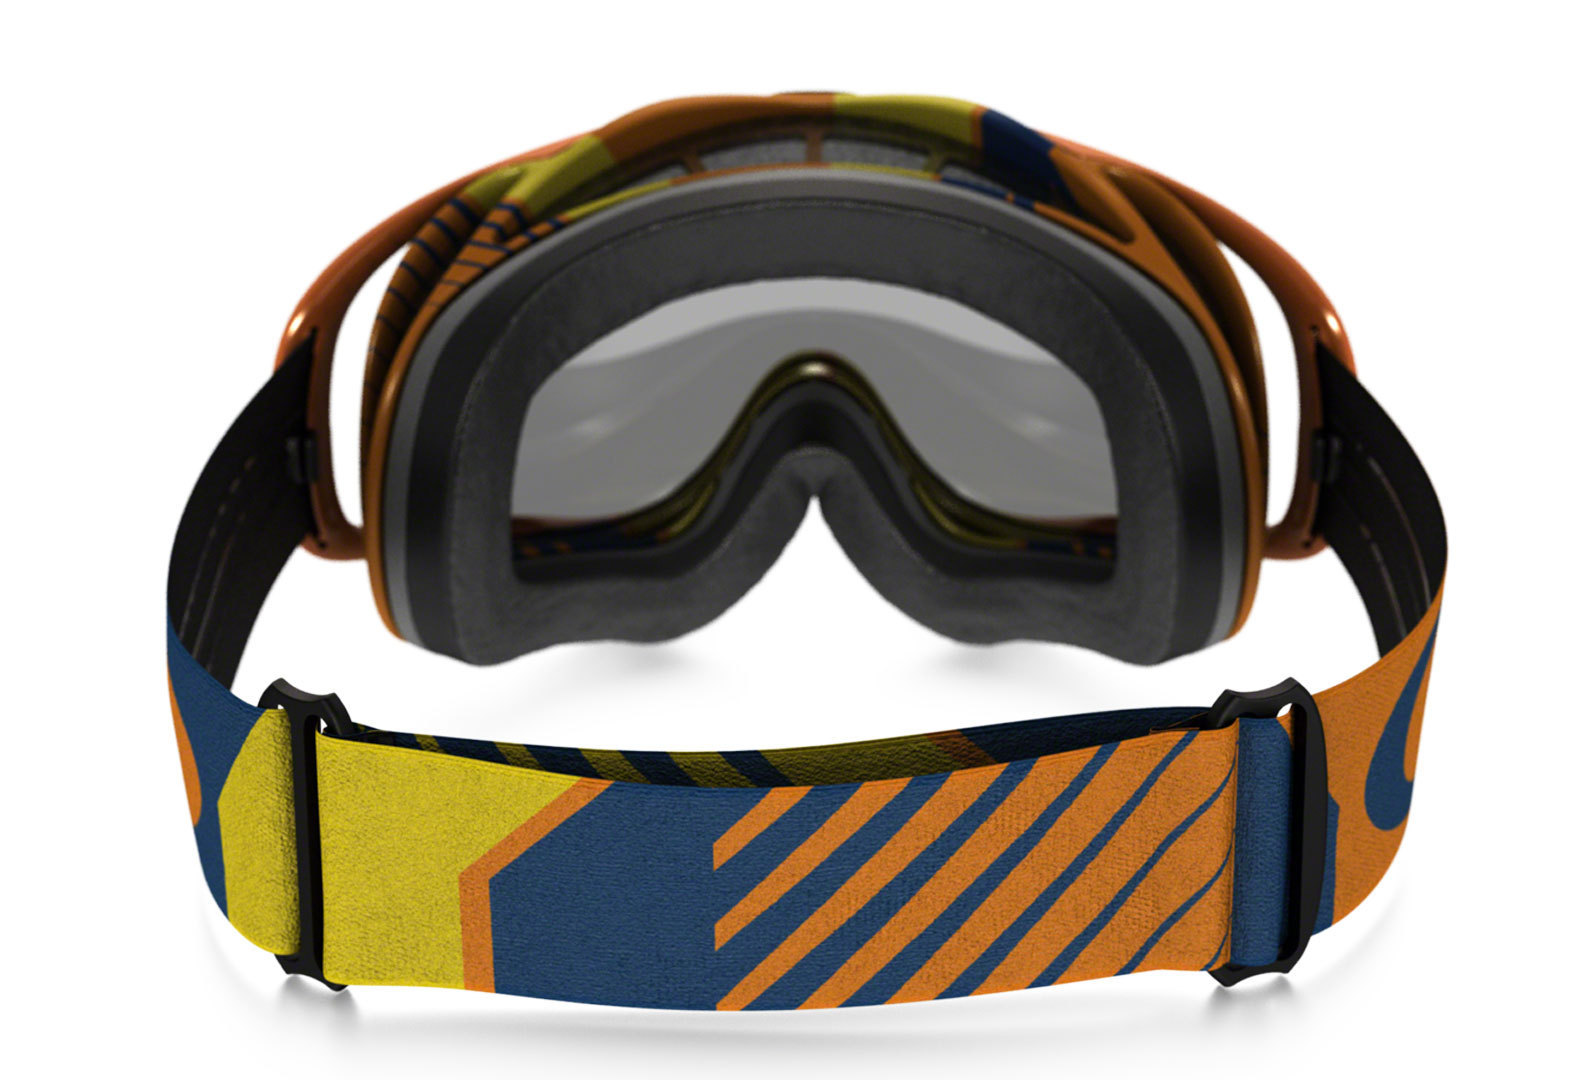 oakley crowbar mx bio hazard orange blue clear g nstig kaufen fc moto. Black Bedroom Furniture Sets. Home Design Ideas